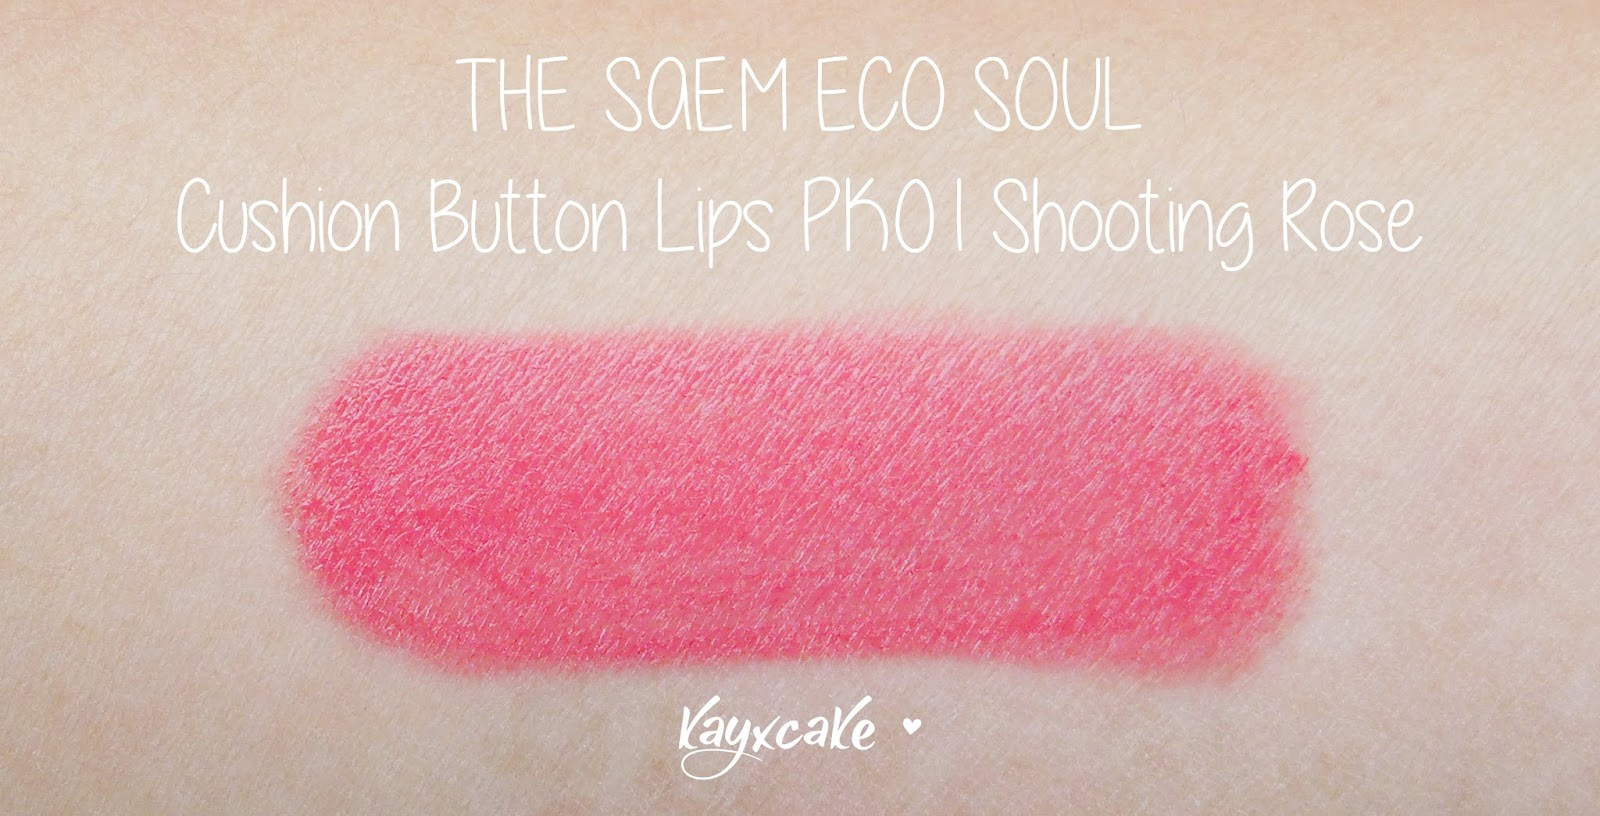 Peripera cushion lips - The Saem Eco Soul Cushion Tint Pk01 Review Swatches